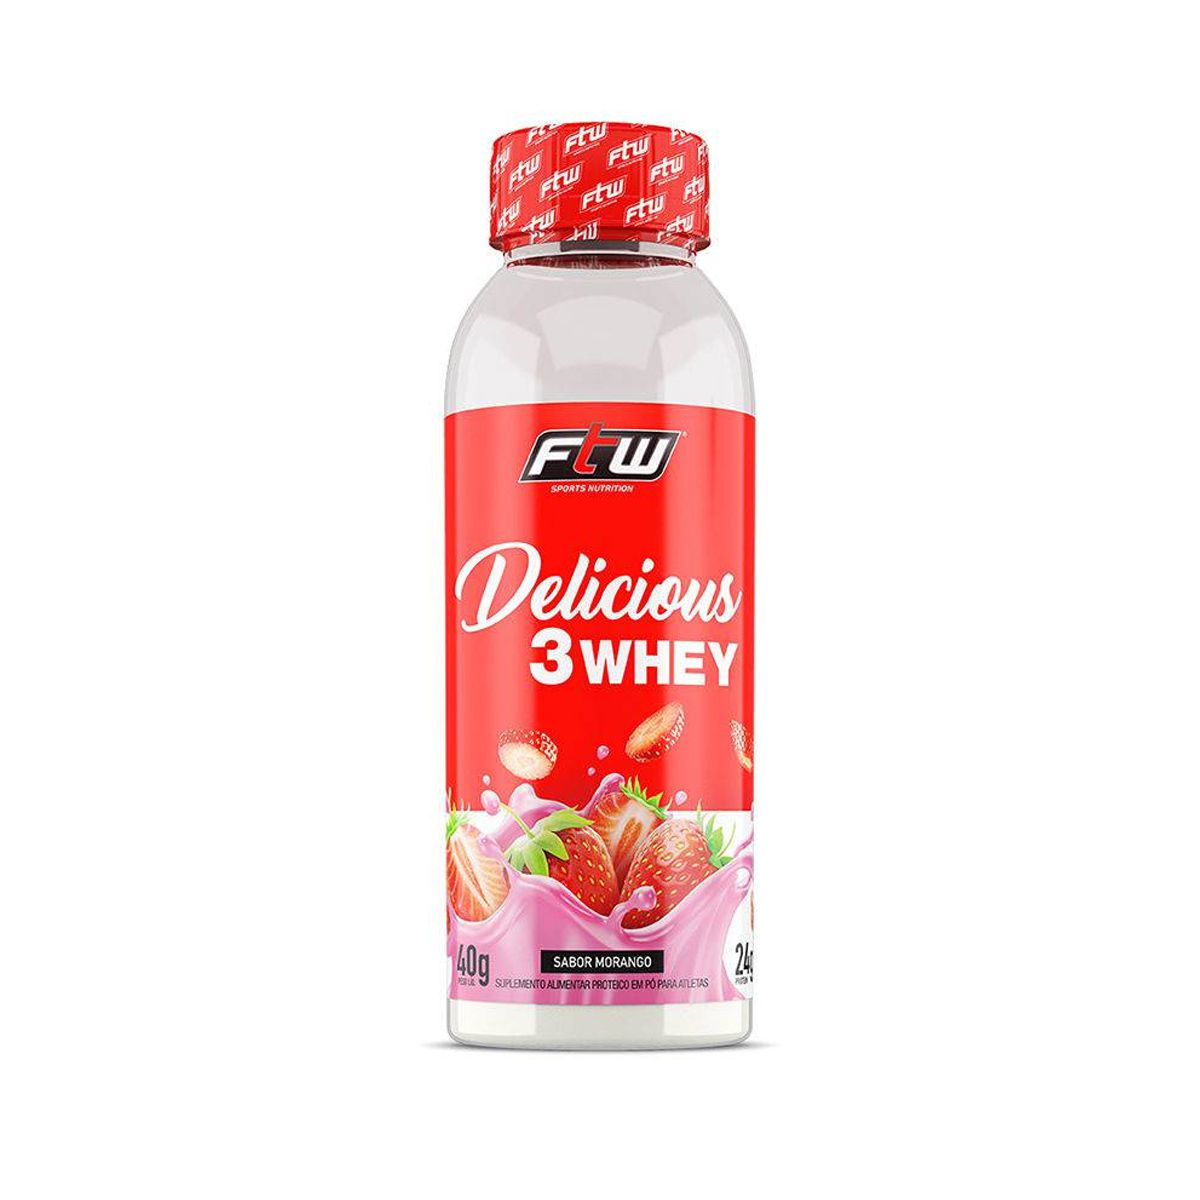 Delicious 3 Whey - 40g - FTW